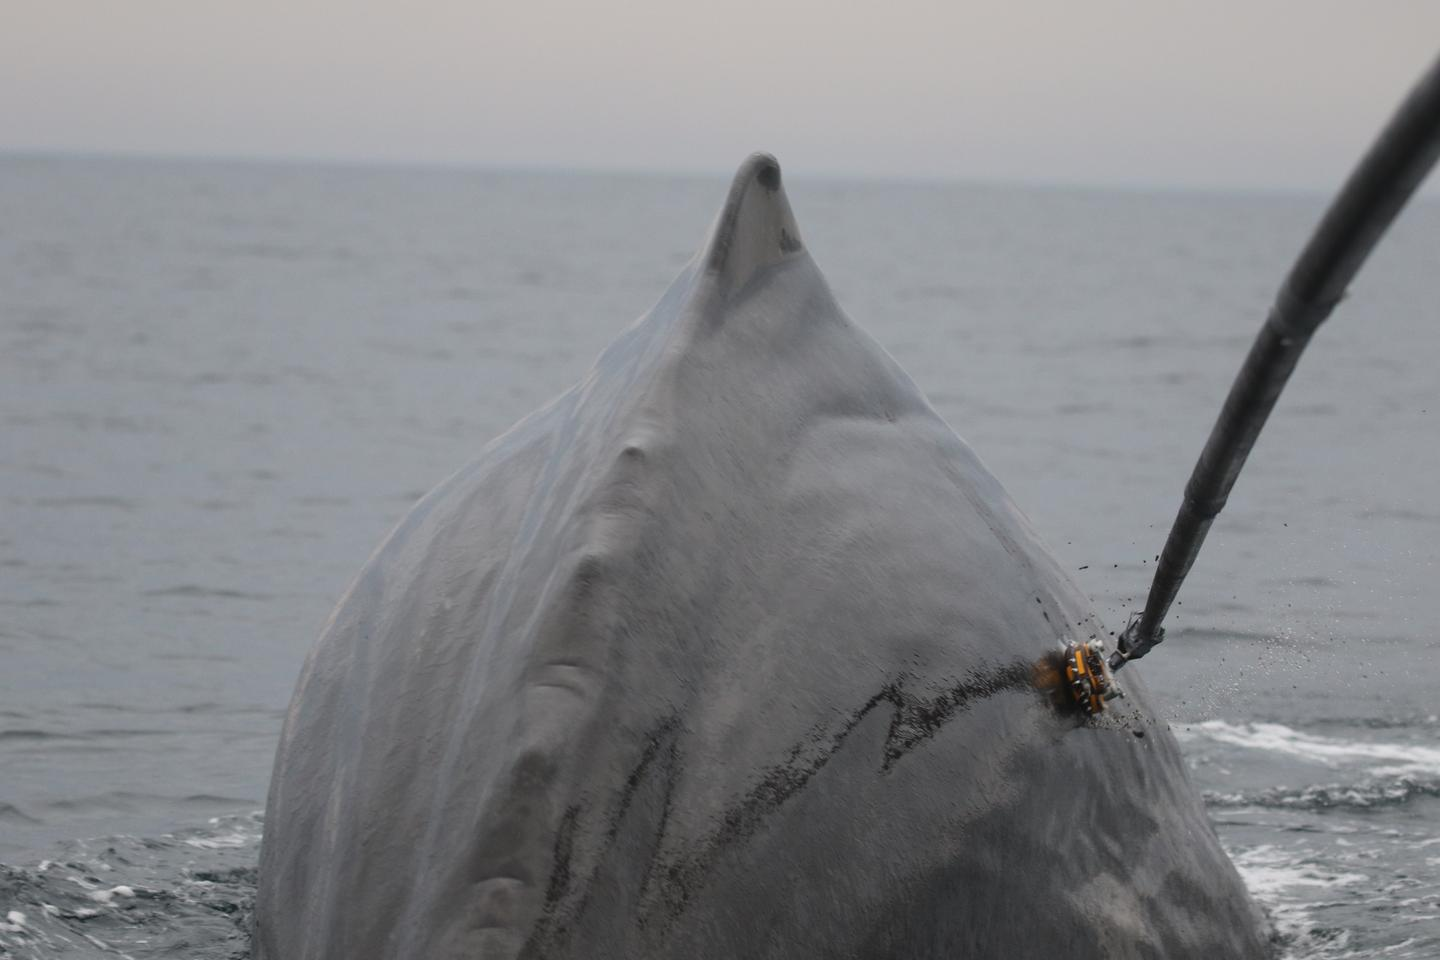 One of the suction-cup data loggers is temporarily attached to a sperm whale